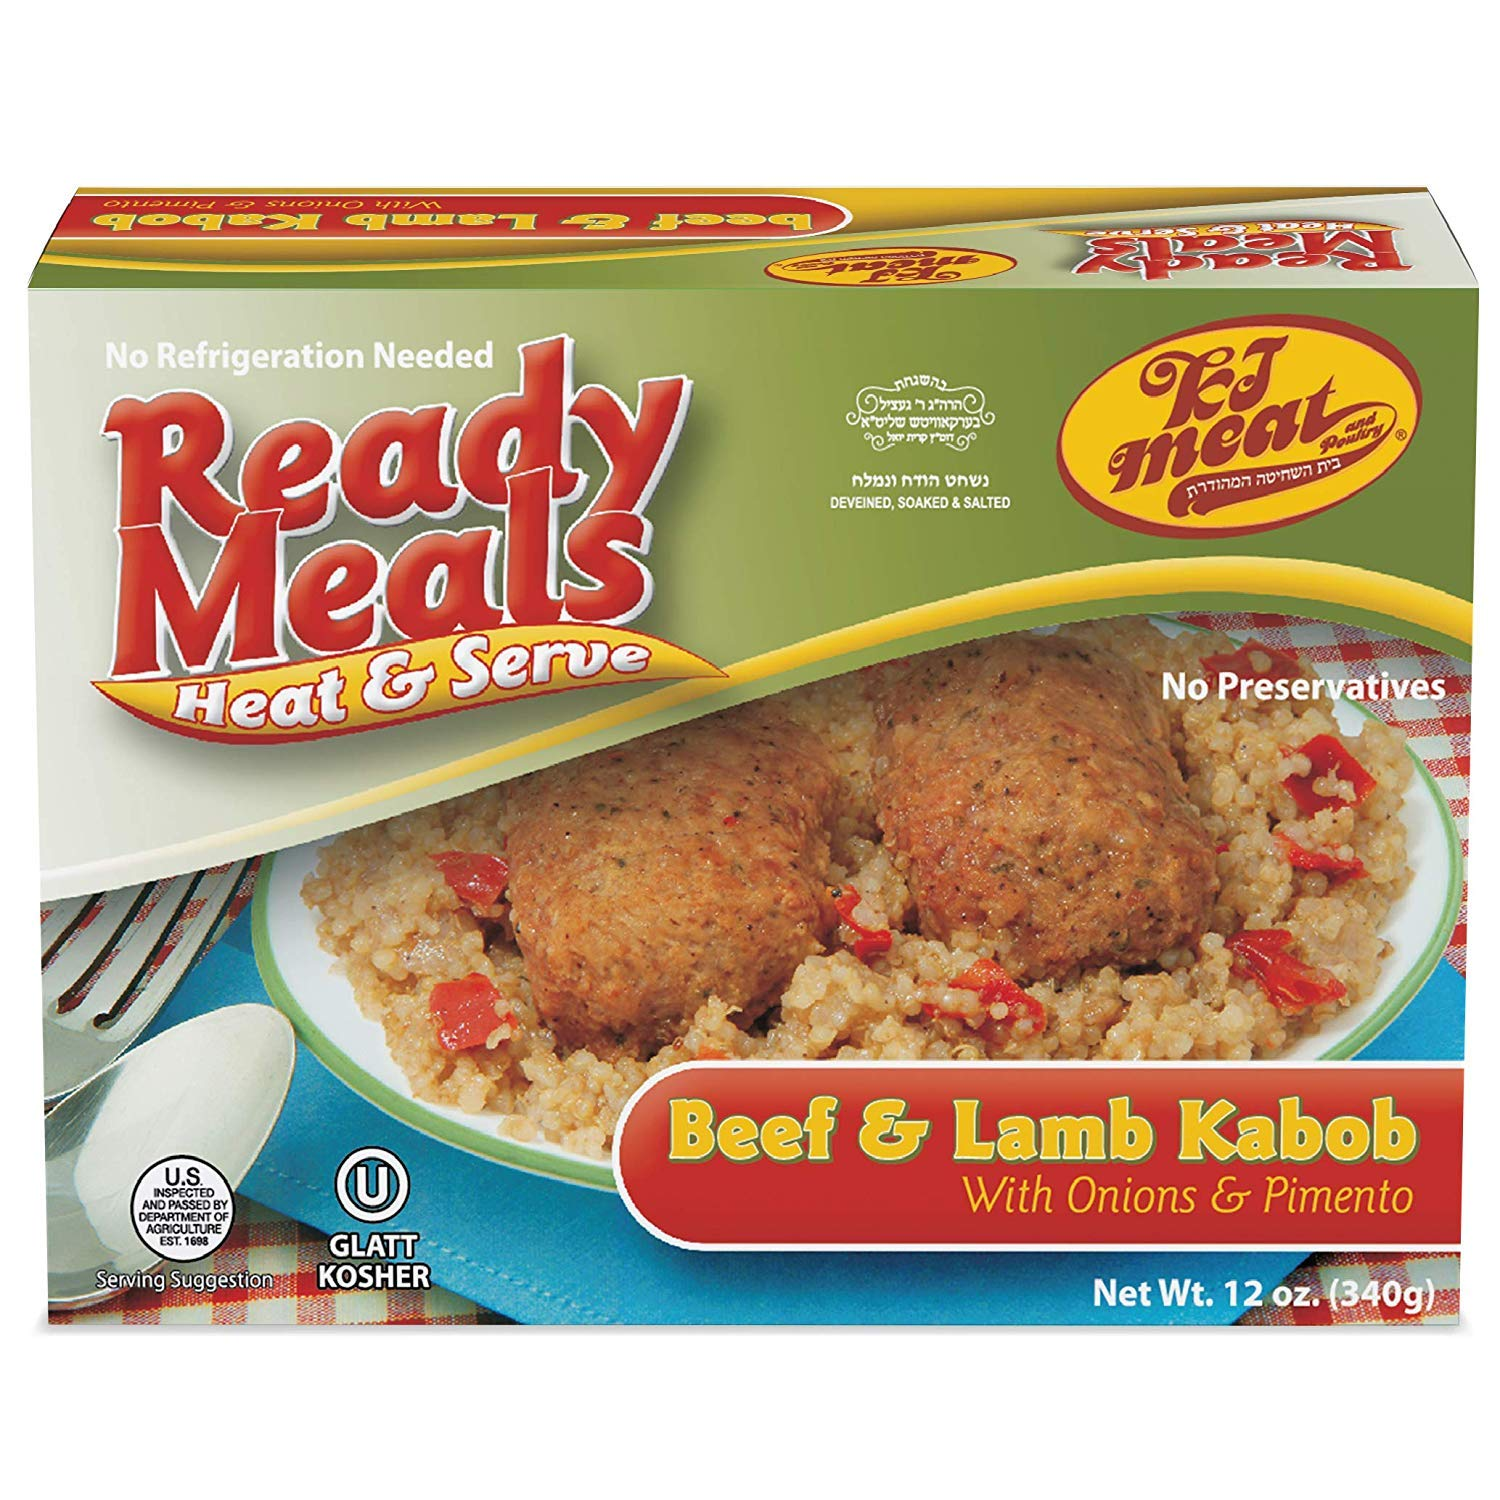 Kosher Meals Ready to Eat, Kosher Beef & Lamb Kabob with Onions & Pimento (Microwavable, Shelf Stable) - Dairy Free - Glatt Kosher (12 ounce - Pack of 12) by KJ Poultry